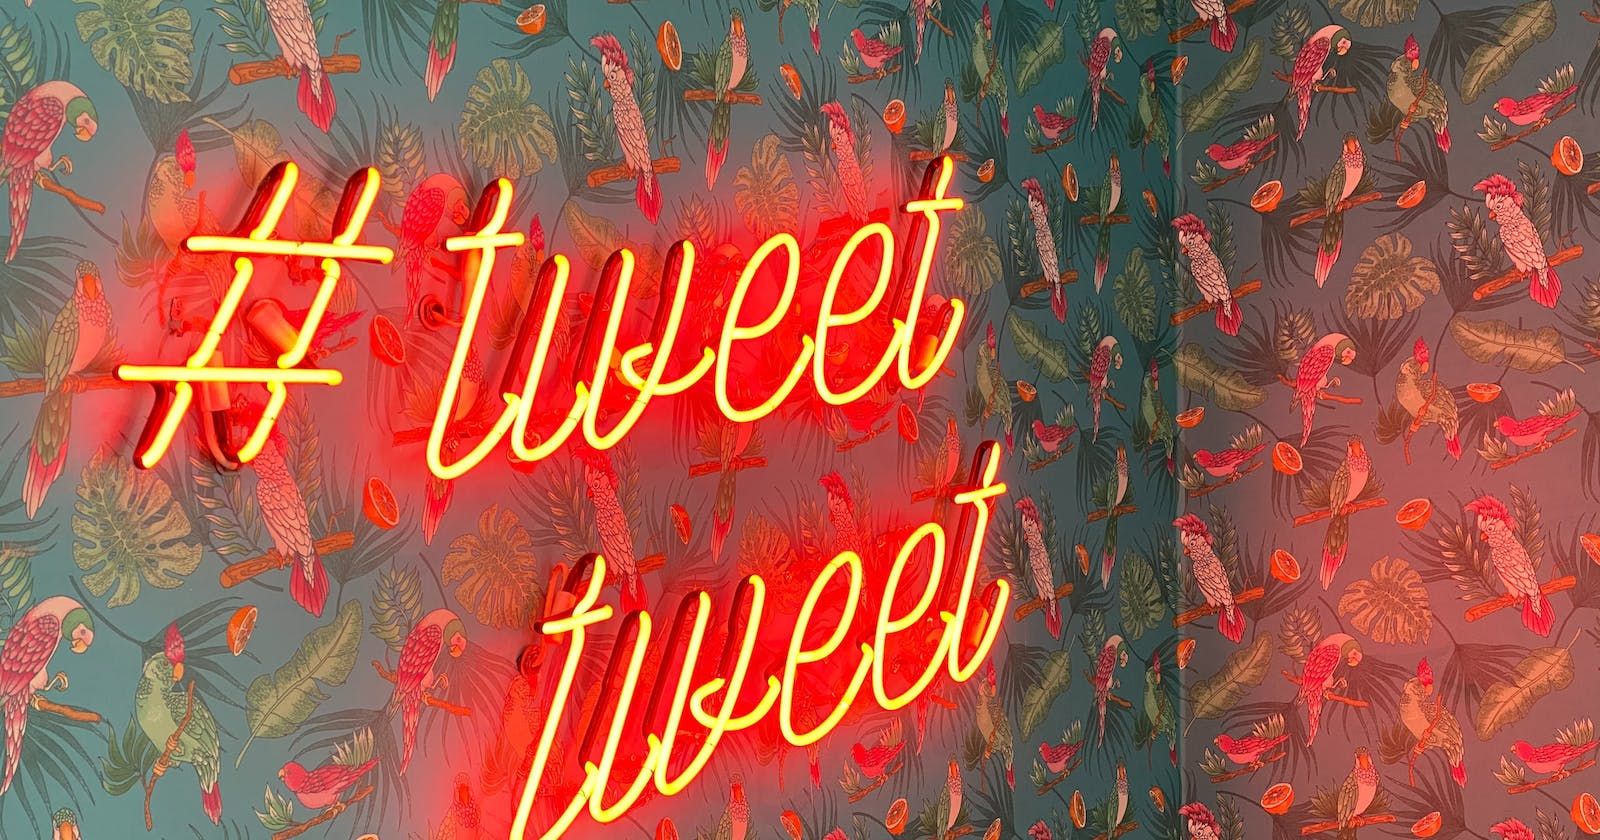 How to get more followers on Twitter. A realistic approach.